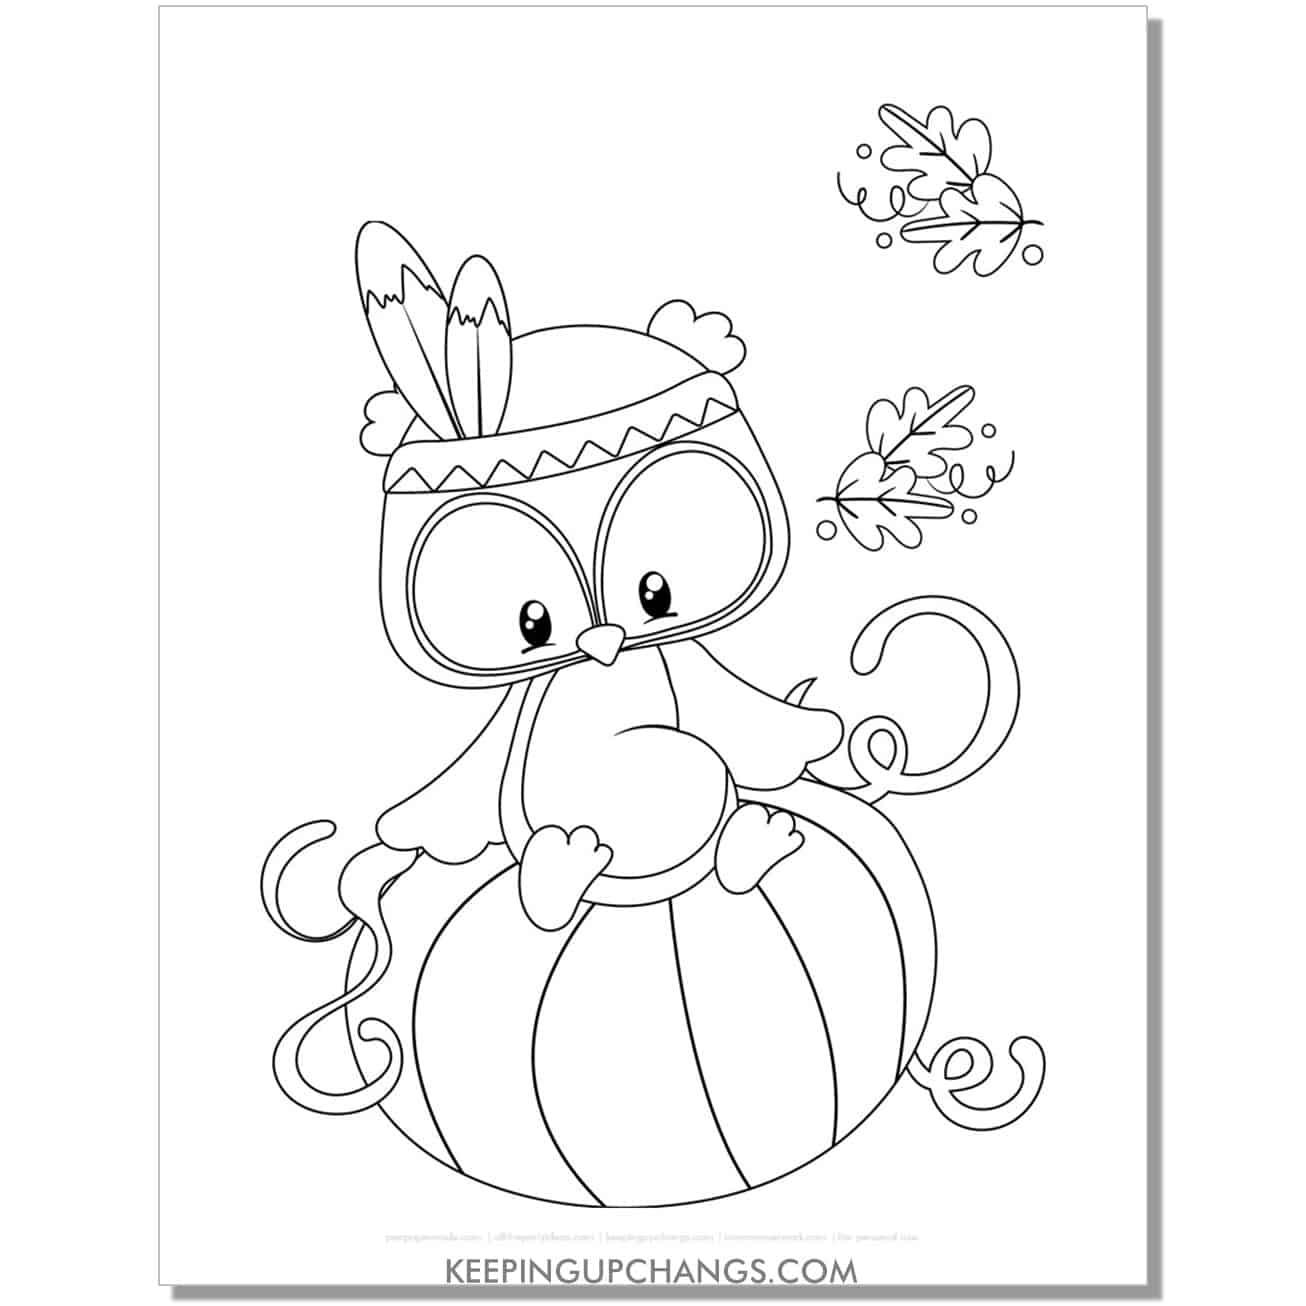 free pumpkin owl indian feather band coloring page for fall, thanksgiving.